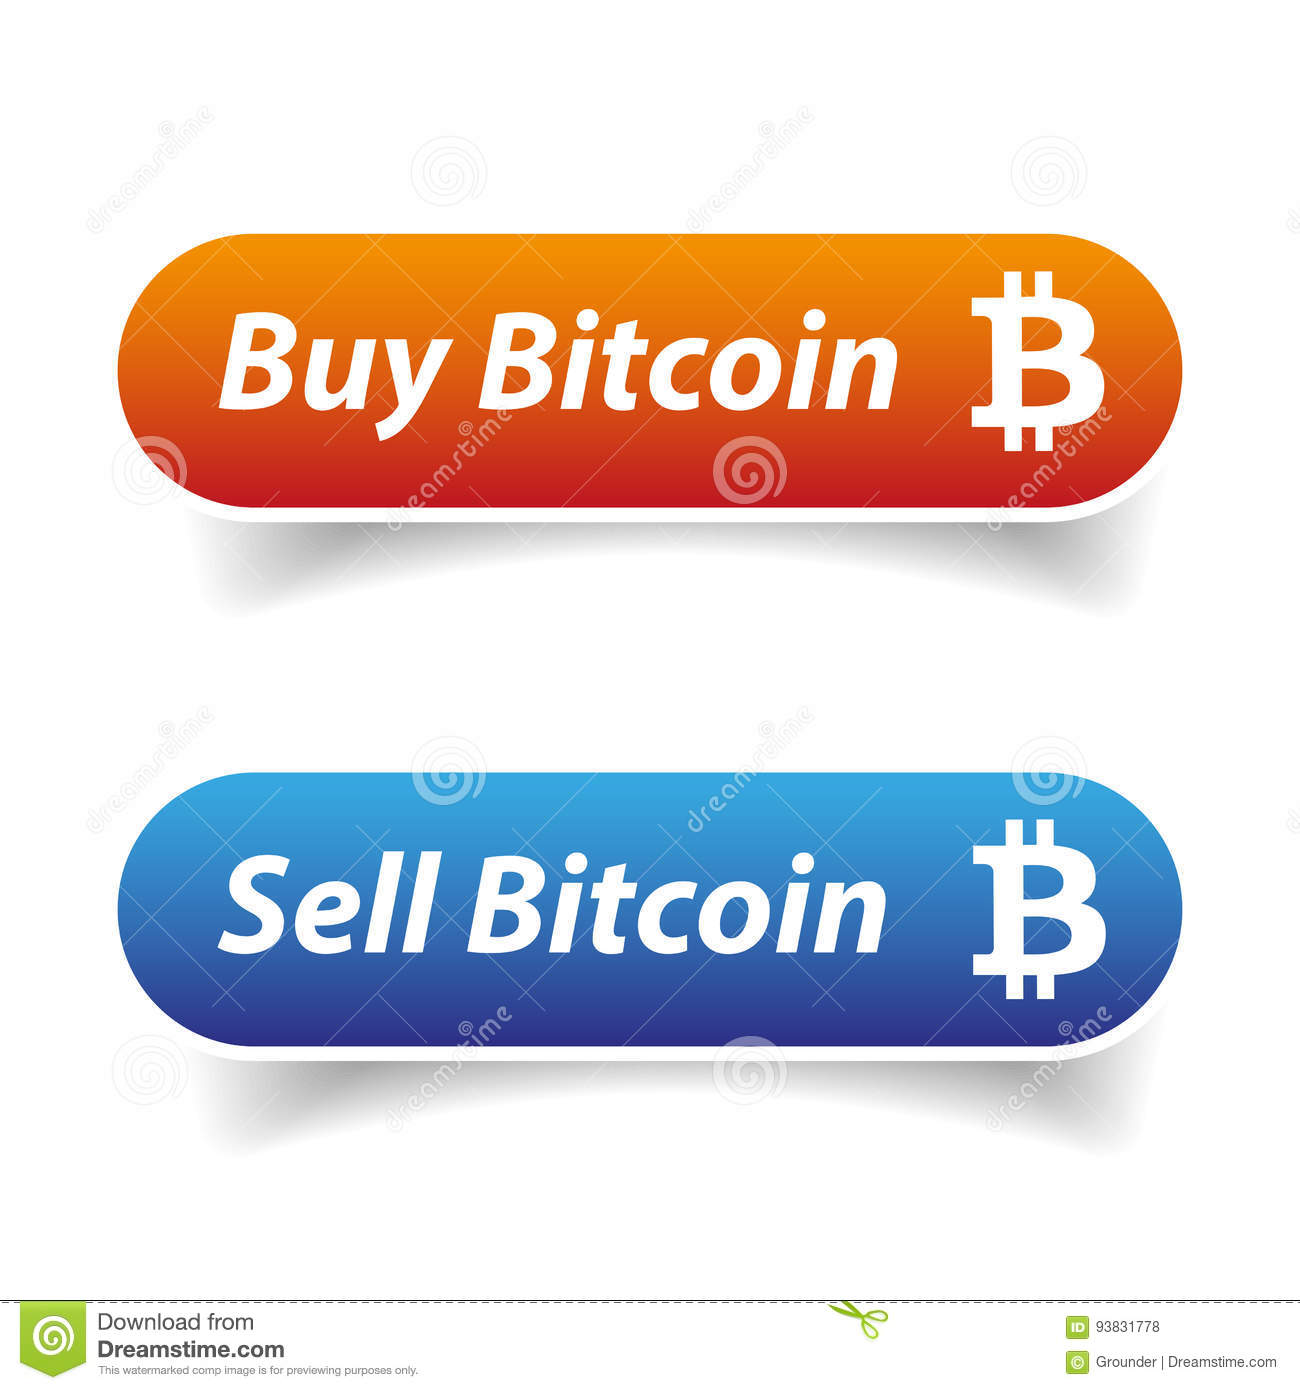 where do i buy and sell bitcoin